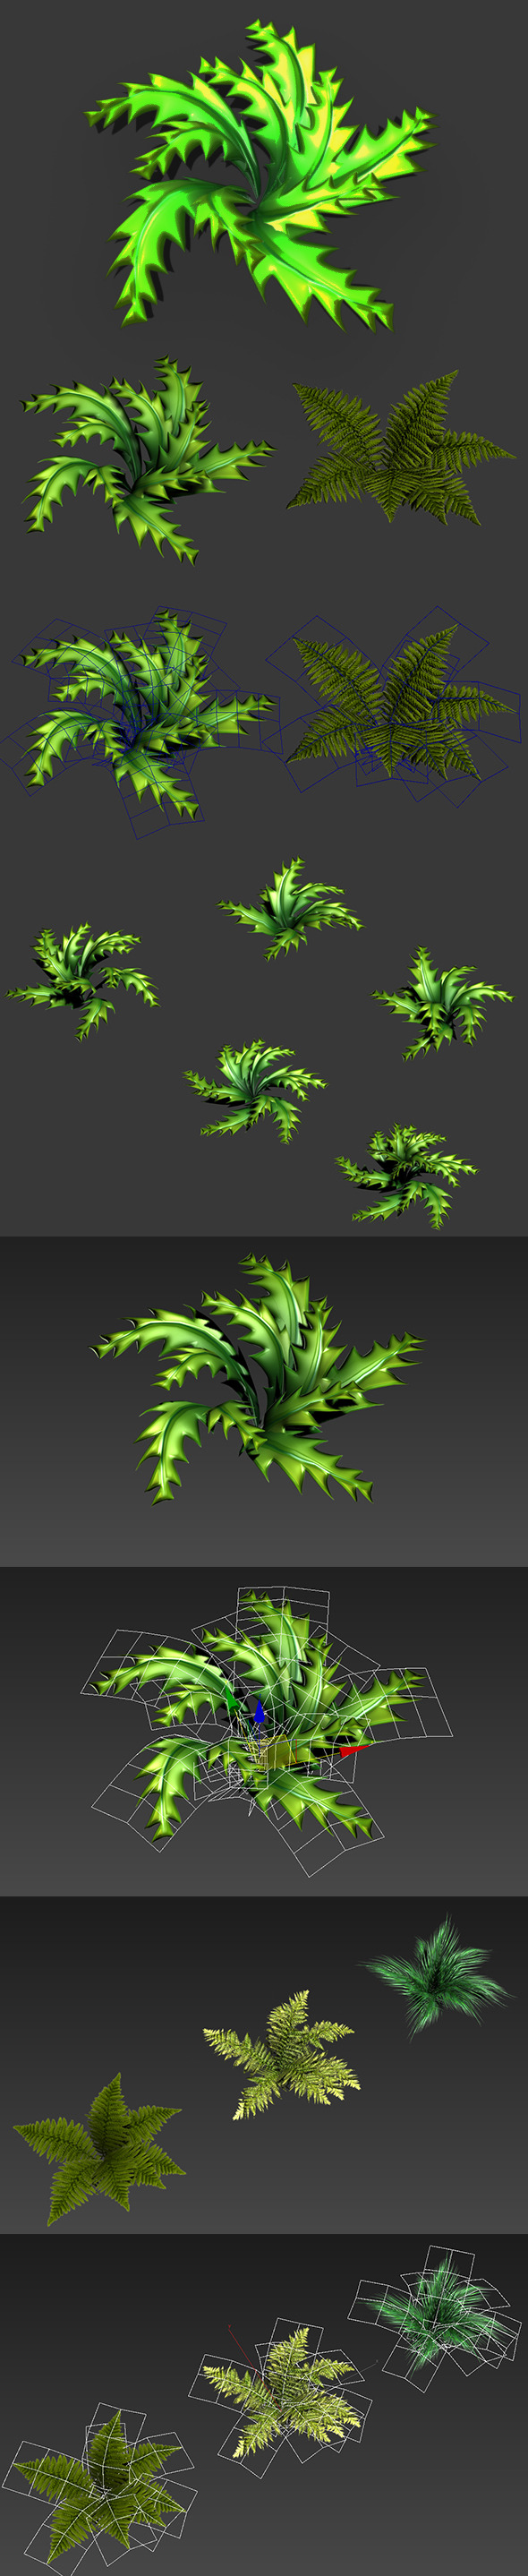 3DOcean Toon and Realistic Fern Shrubs 5517433